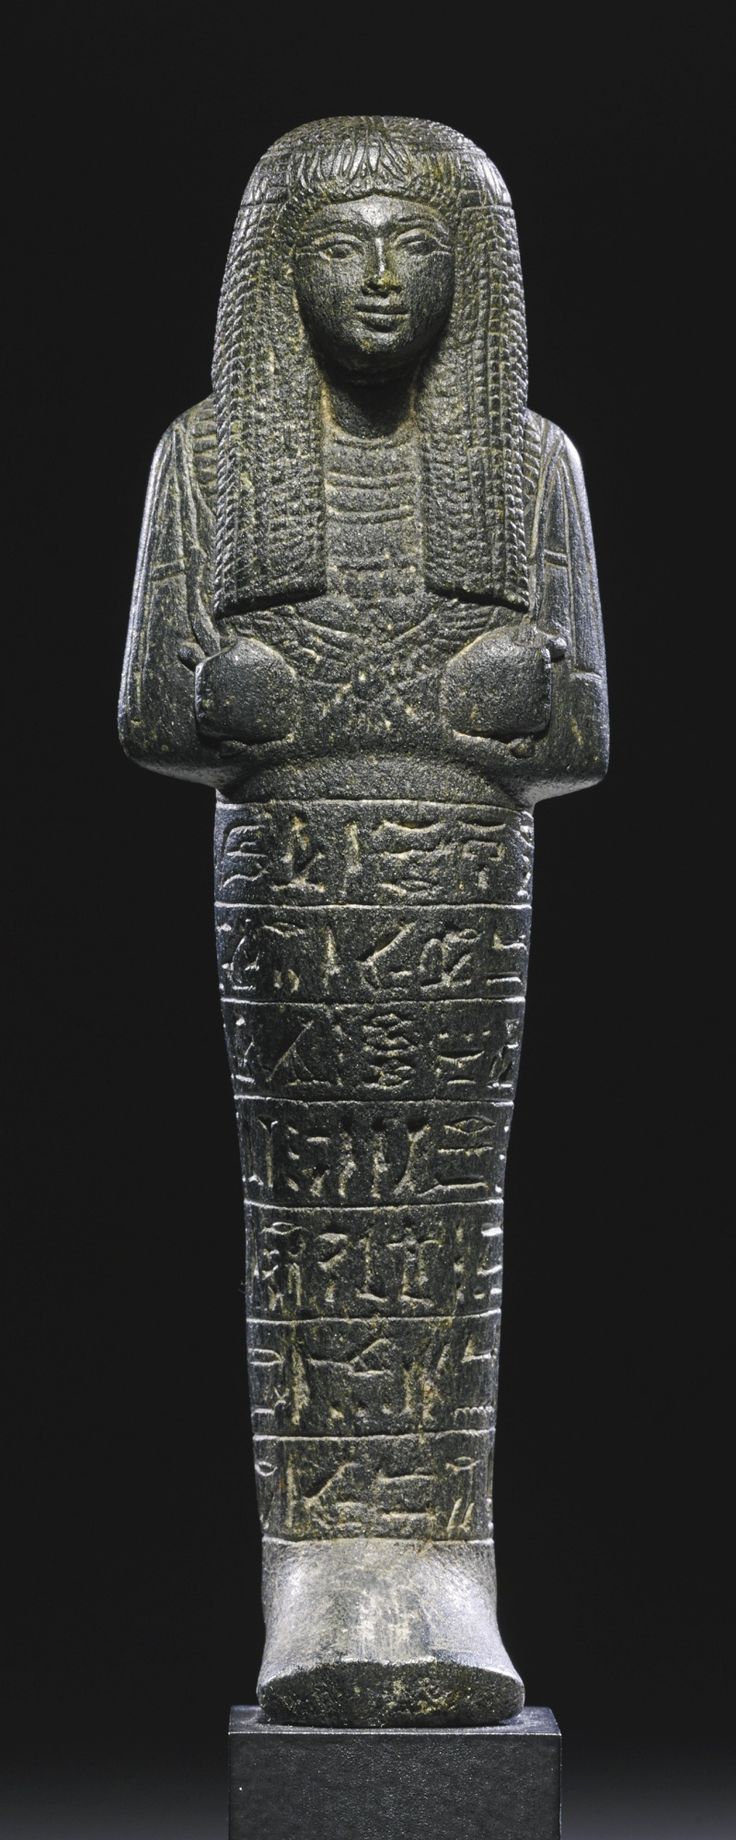 Serpentine ushabti of Kefri, Mistress of the House.  Late 18th dynasty, c. 1330-1292 B.C. | Sotheby's